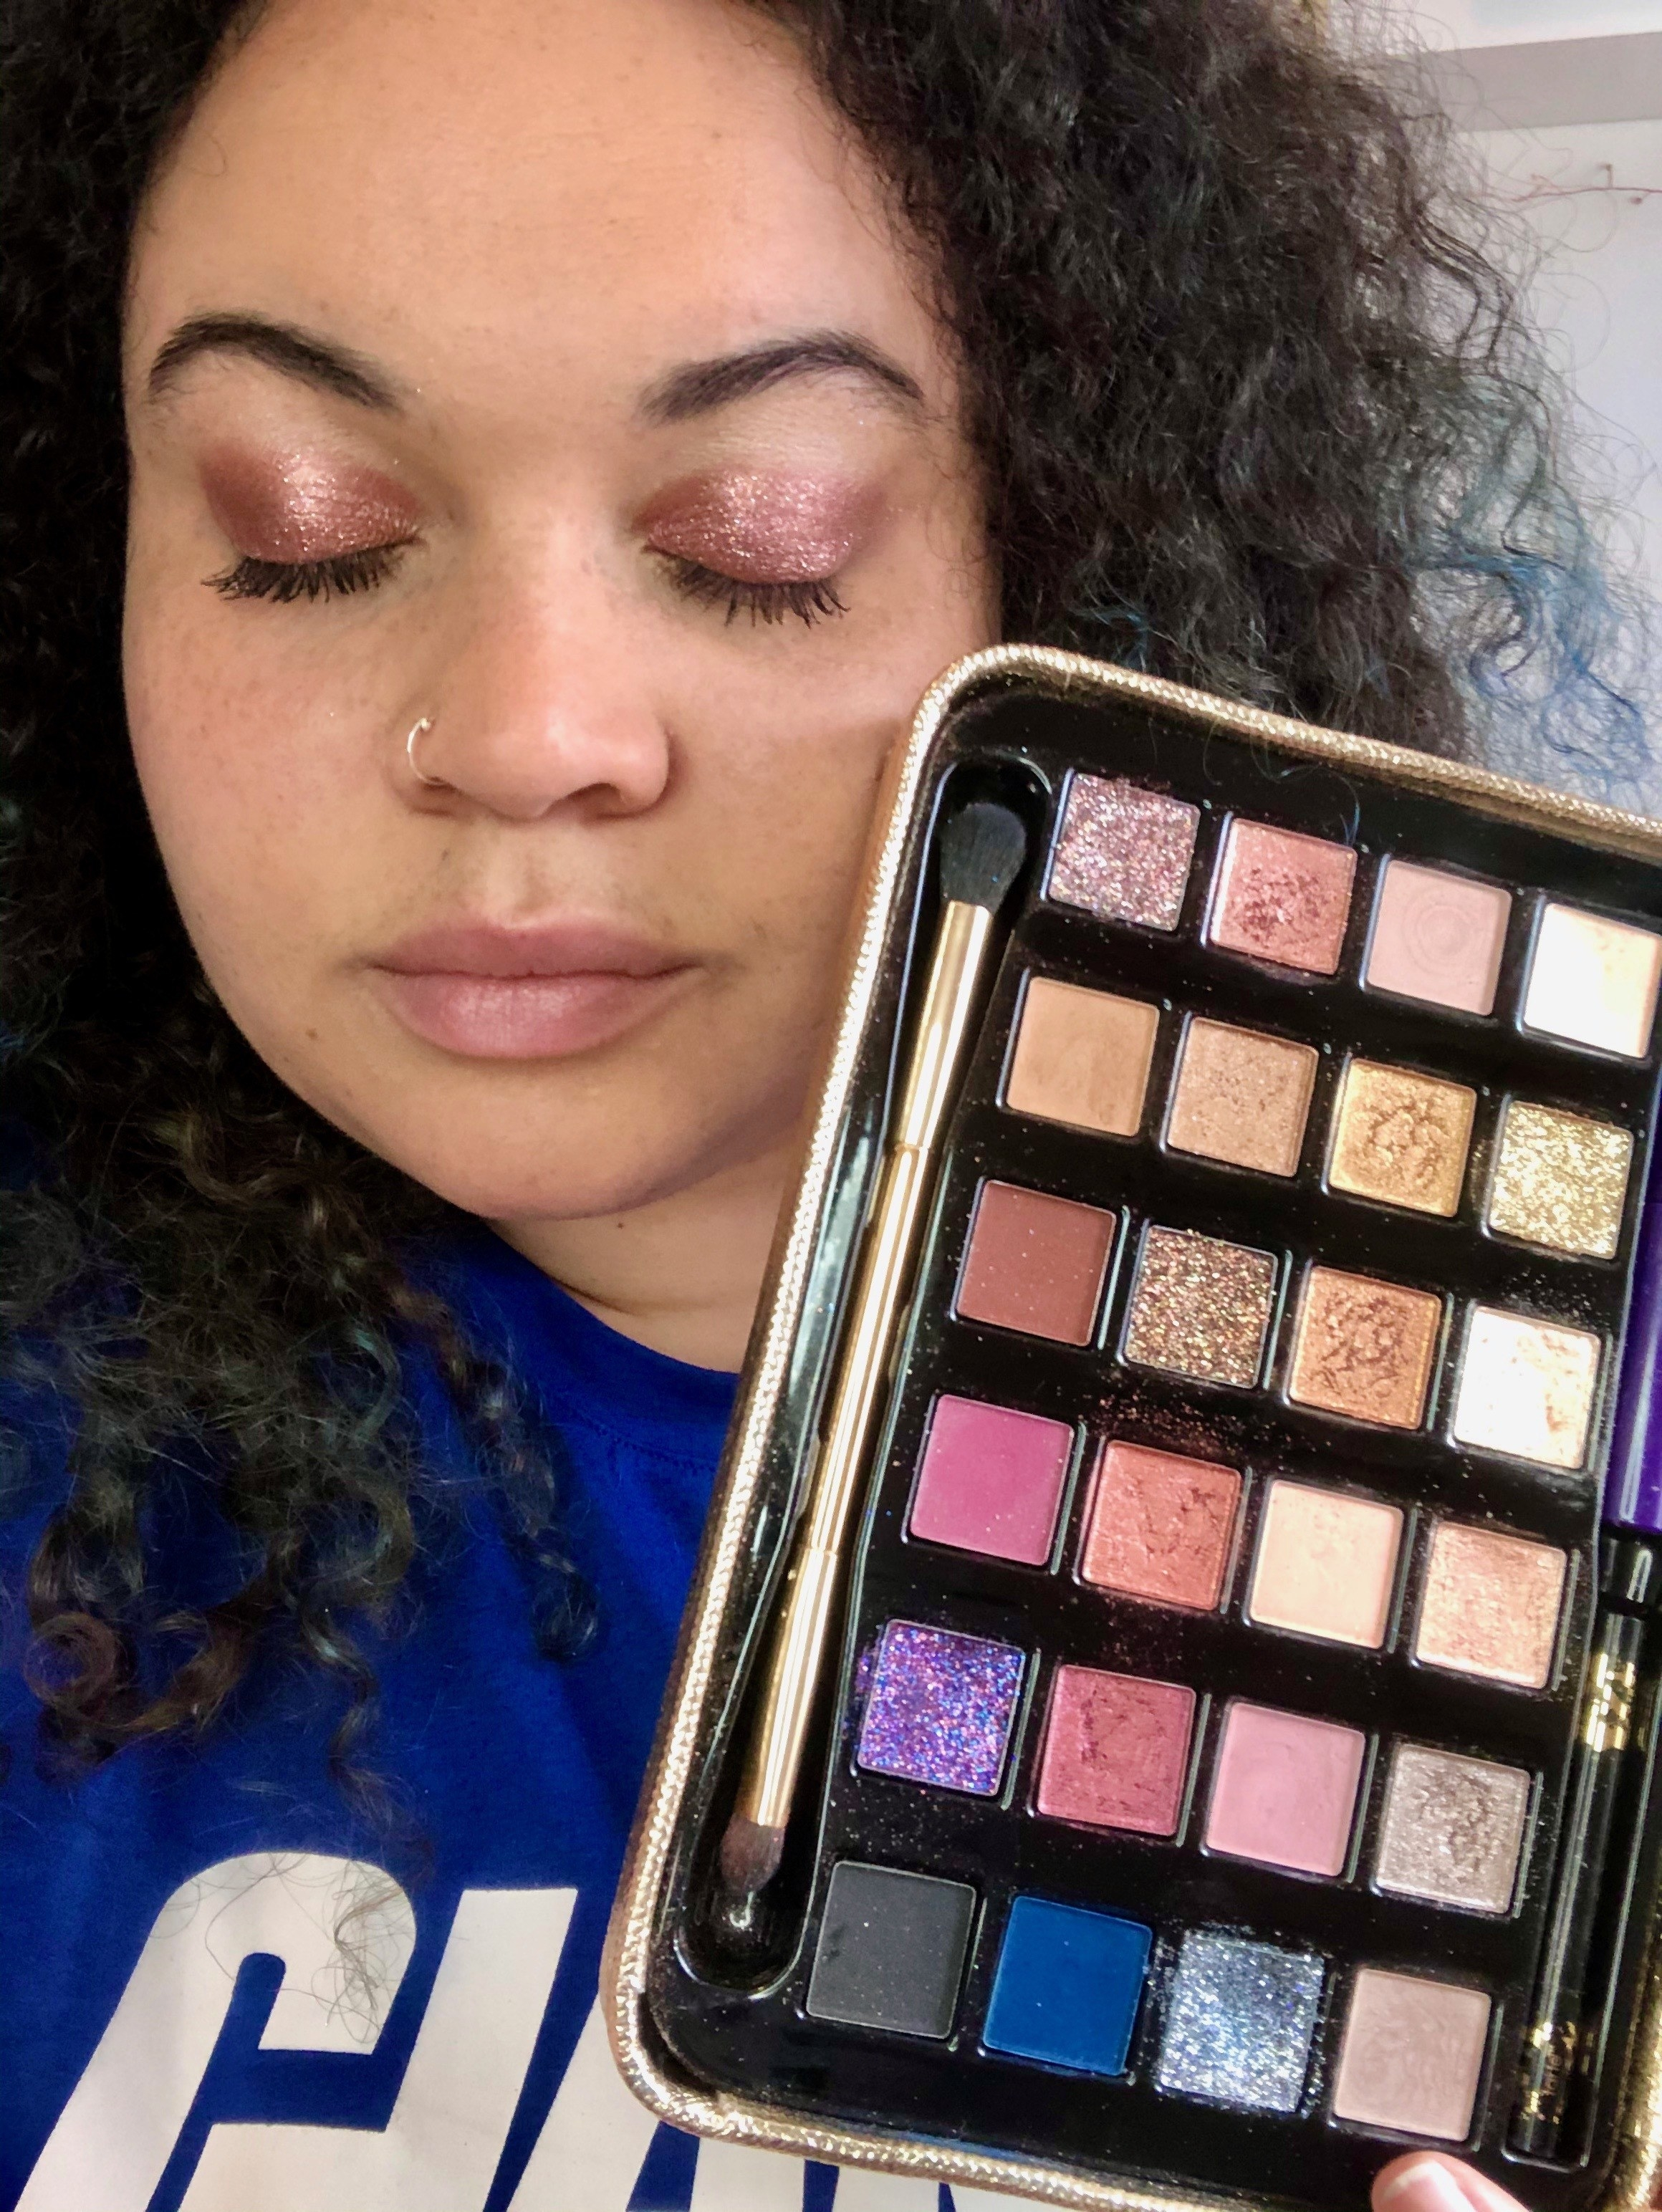 BuzzFeed Shopping reviewer holding palette and wearing pink, glittery shadow